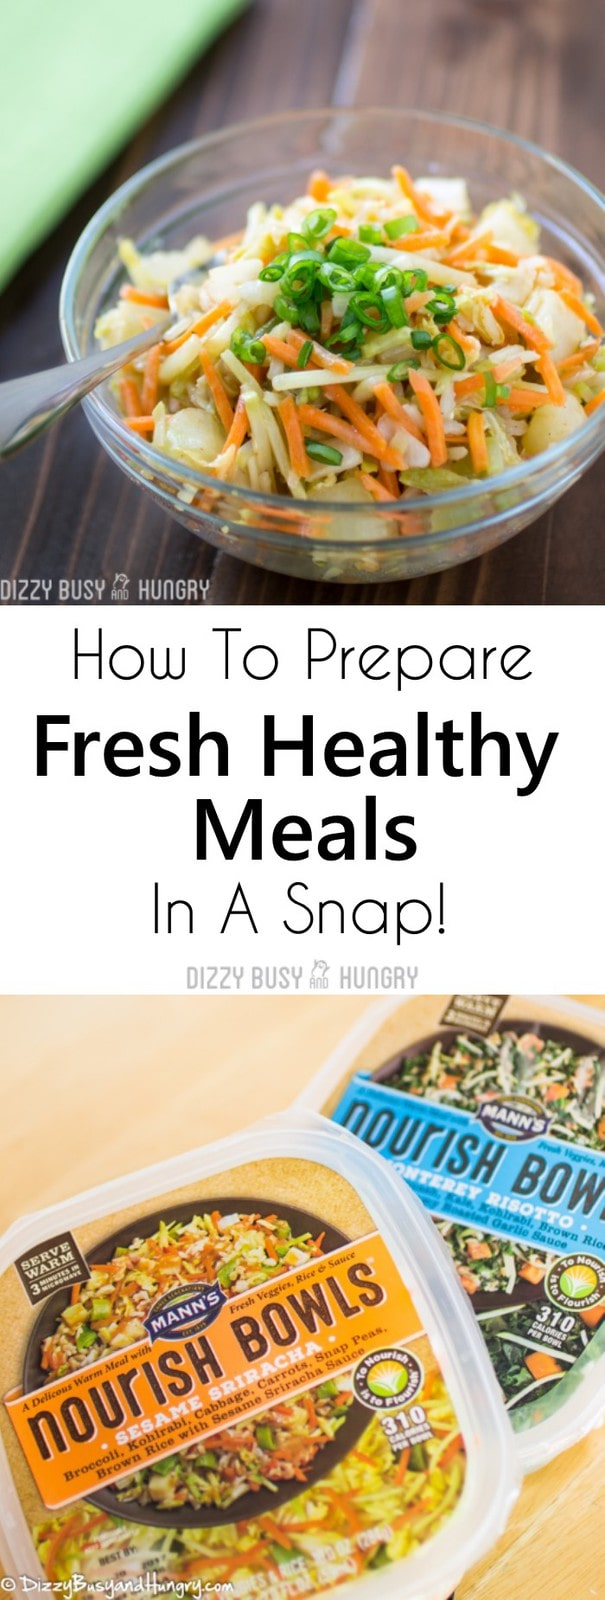 Nourish Bowls | DizzyBusyandHungry.com - How to prepare fresh healthy meals in a snap!